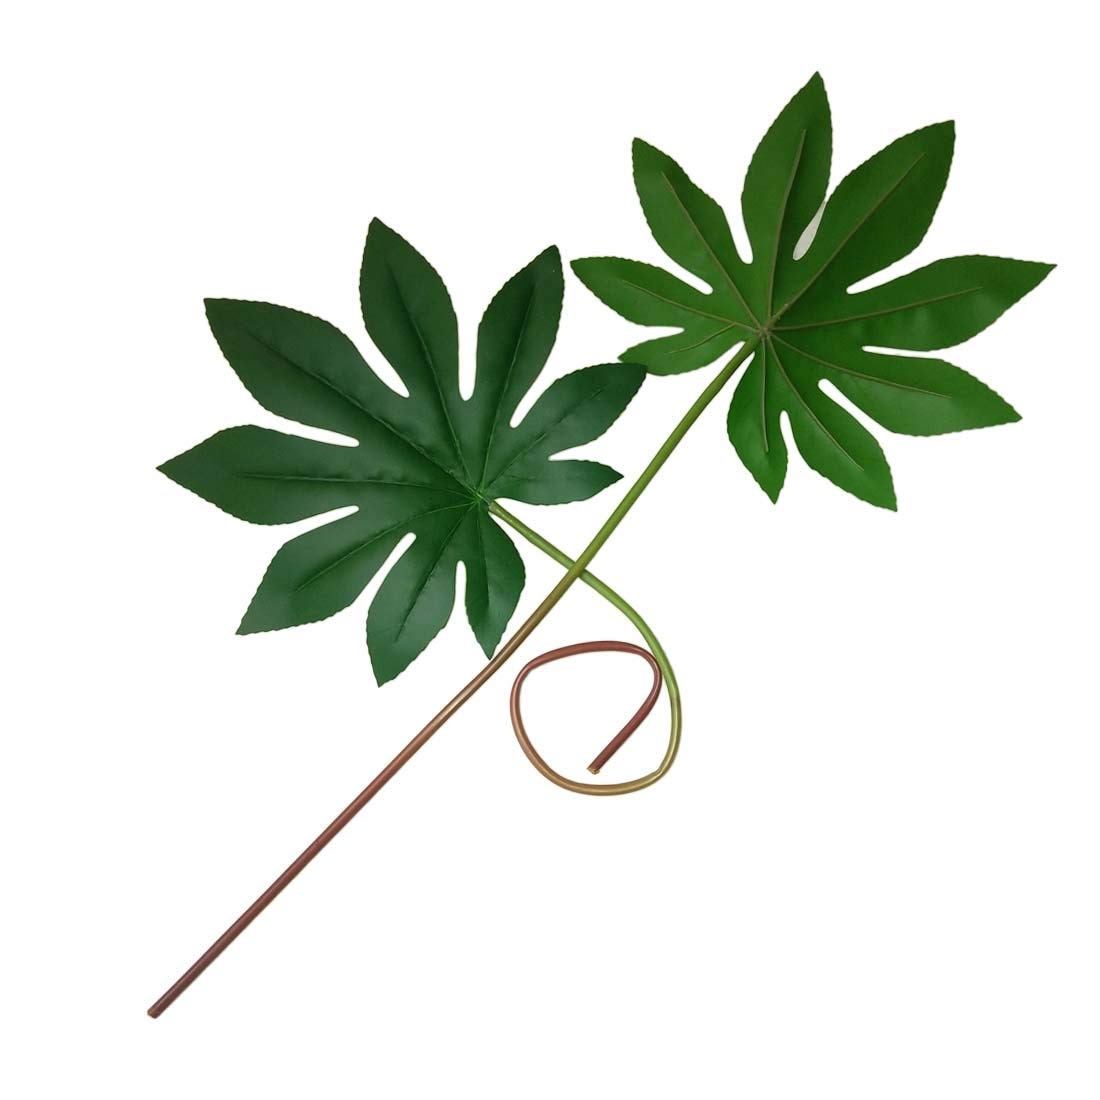 Lorigun 3Pcs Artificial Plant for Home Decoration Fake Leaves of Unique Plant Fatsia 9.3 Inches Large Fake Leaf with Long Flexible Stem Green Plants for Home Office Decor